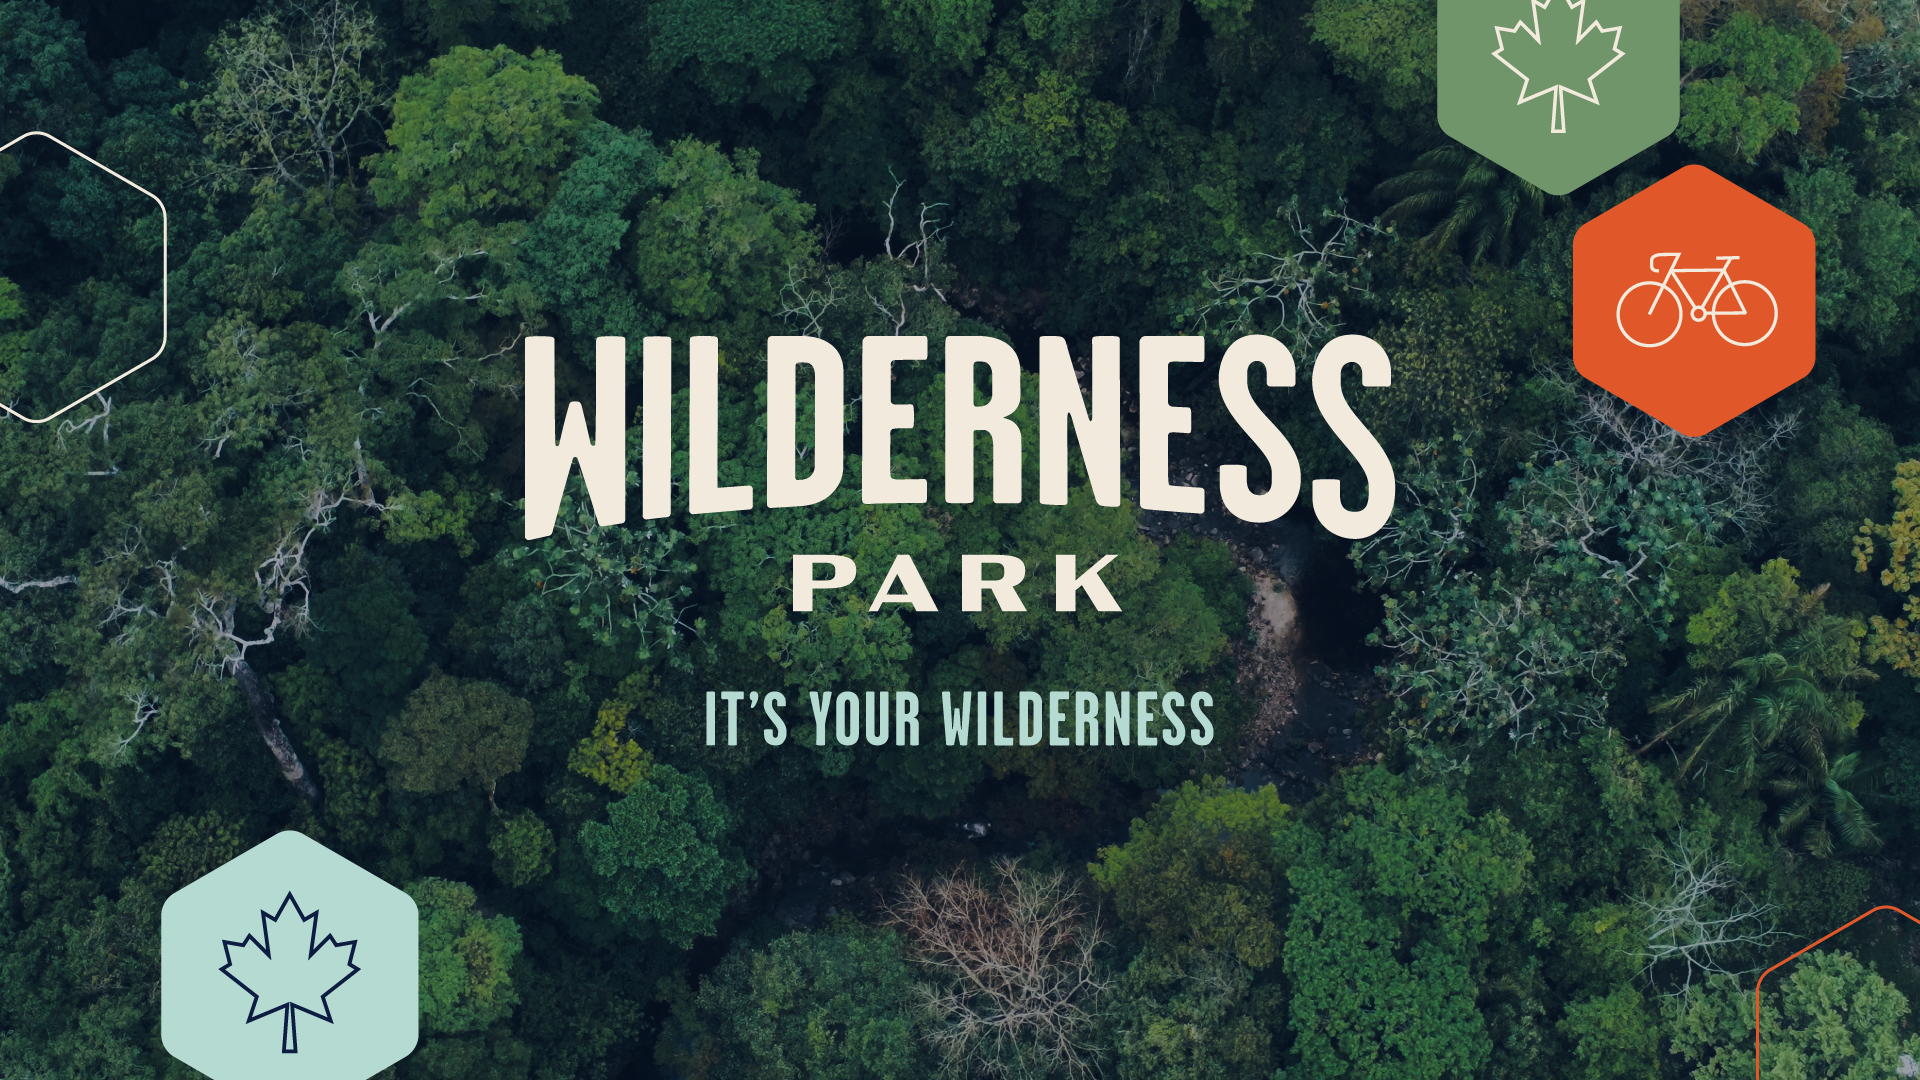 It's Your Wilderness!